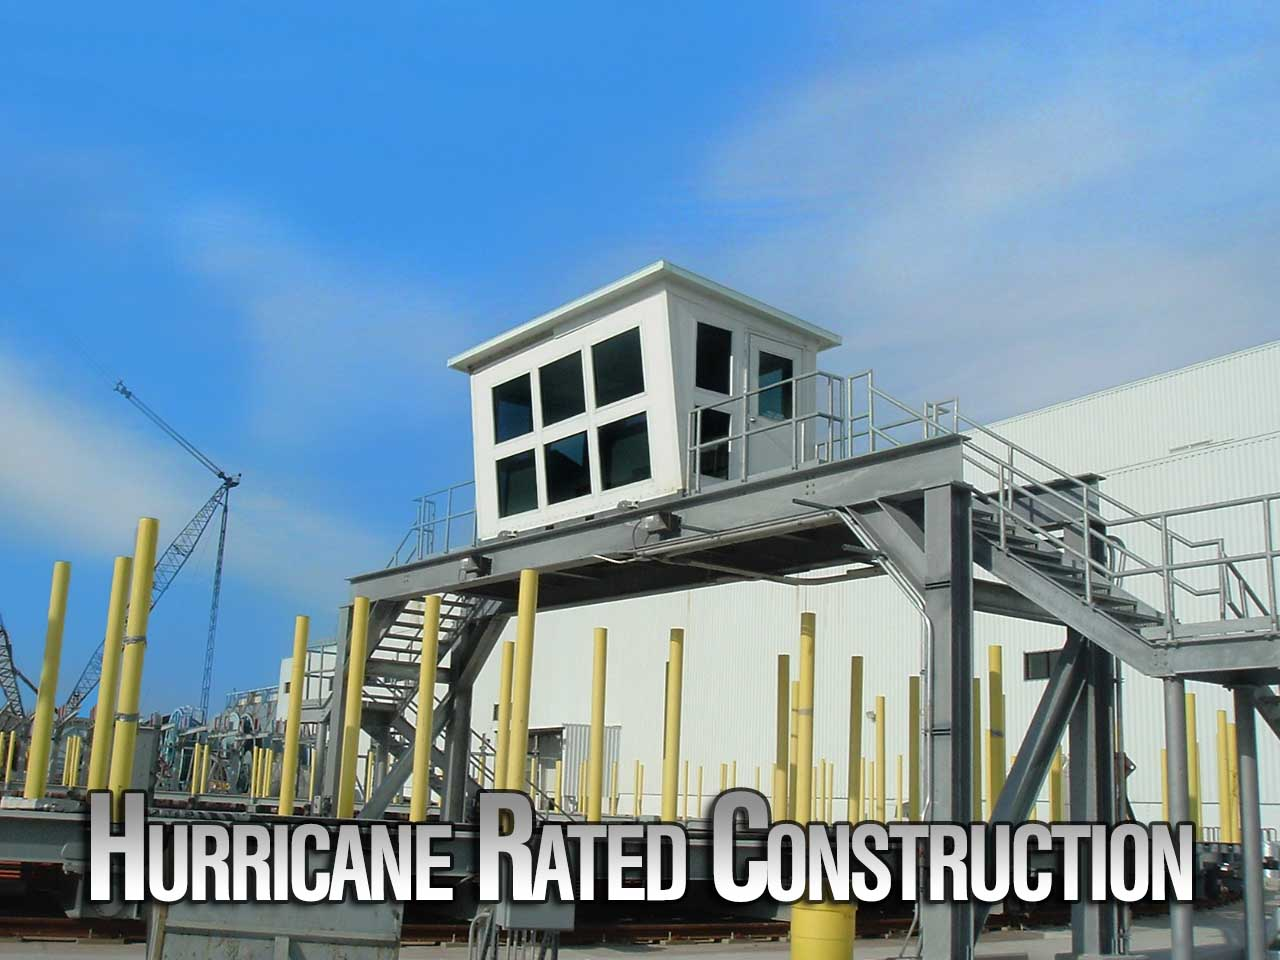 Hurricane Rated Construction